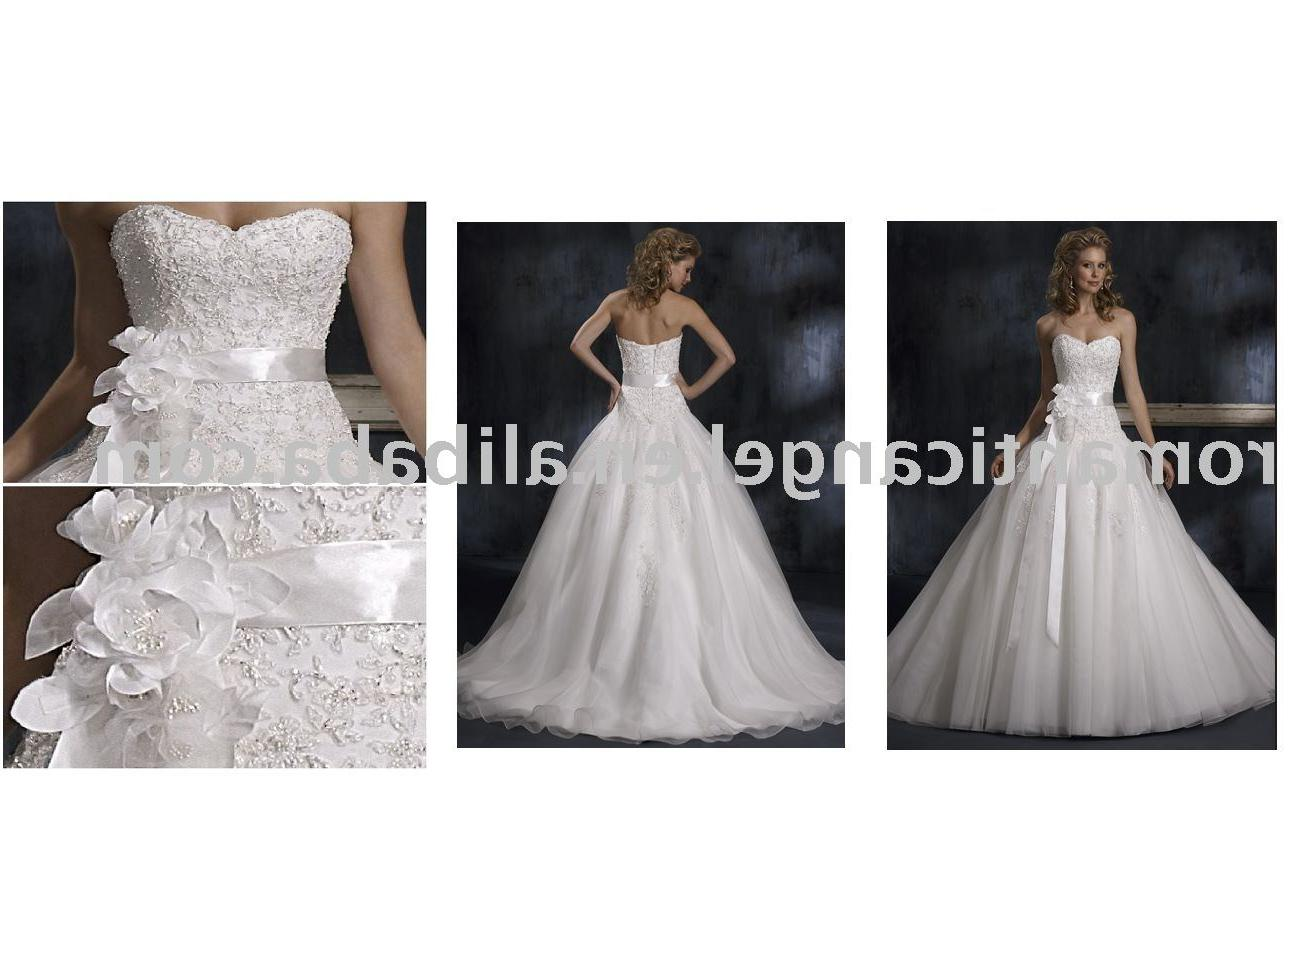 August new arrival higher quality wedding dress WD-90